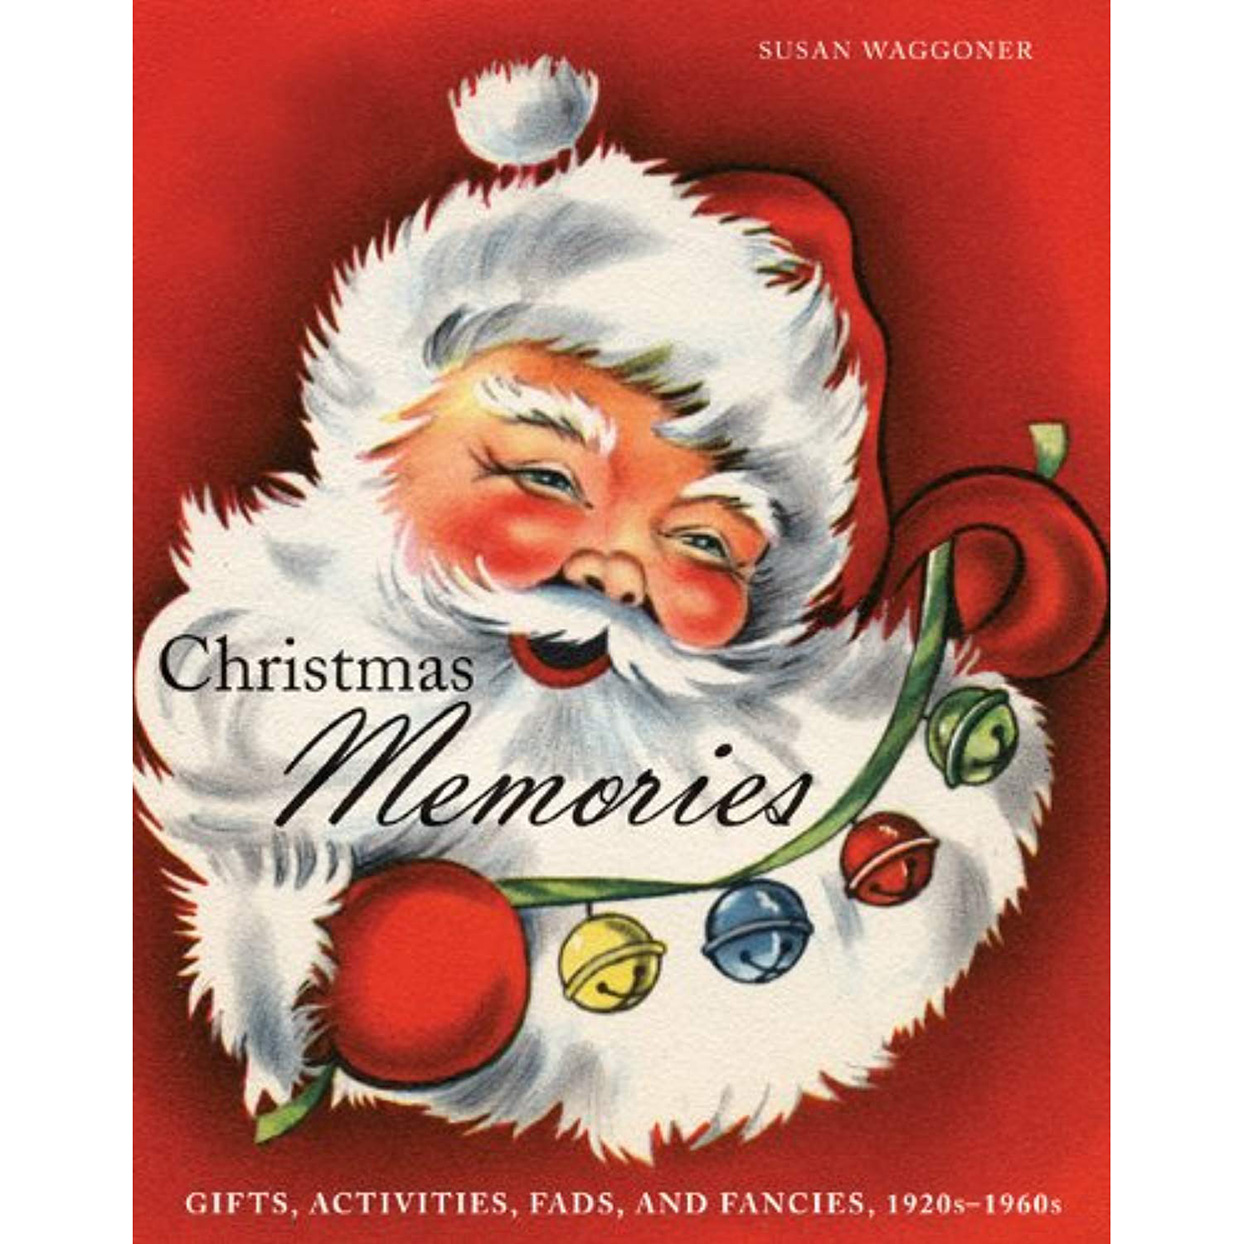 Book cover of Christmas Memories: Gifts, Activities, Fads, and Fancies, 1920s-1960s: Susan Waggoner